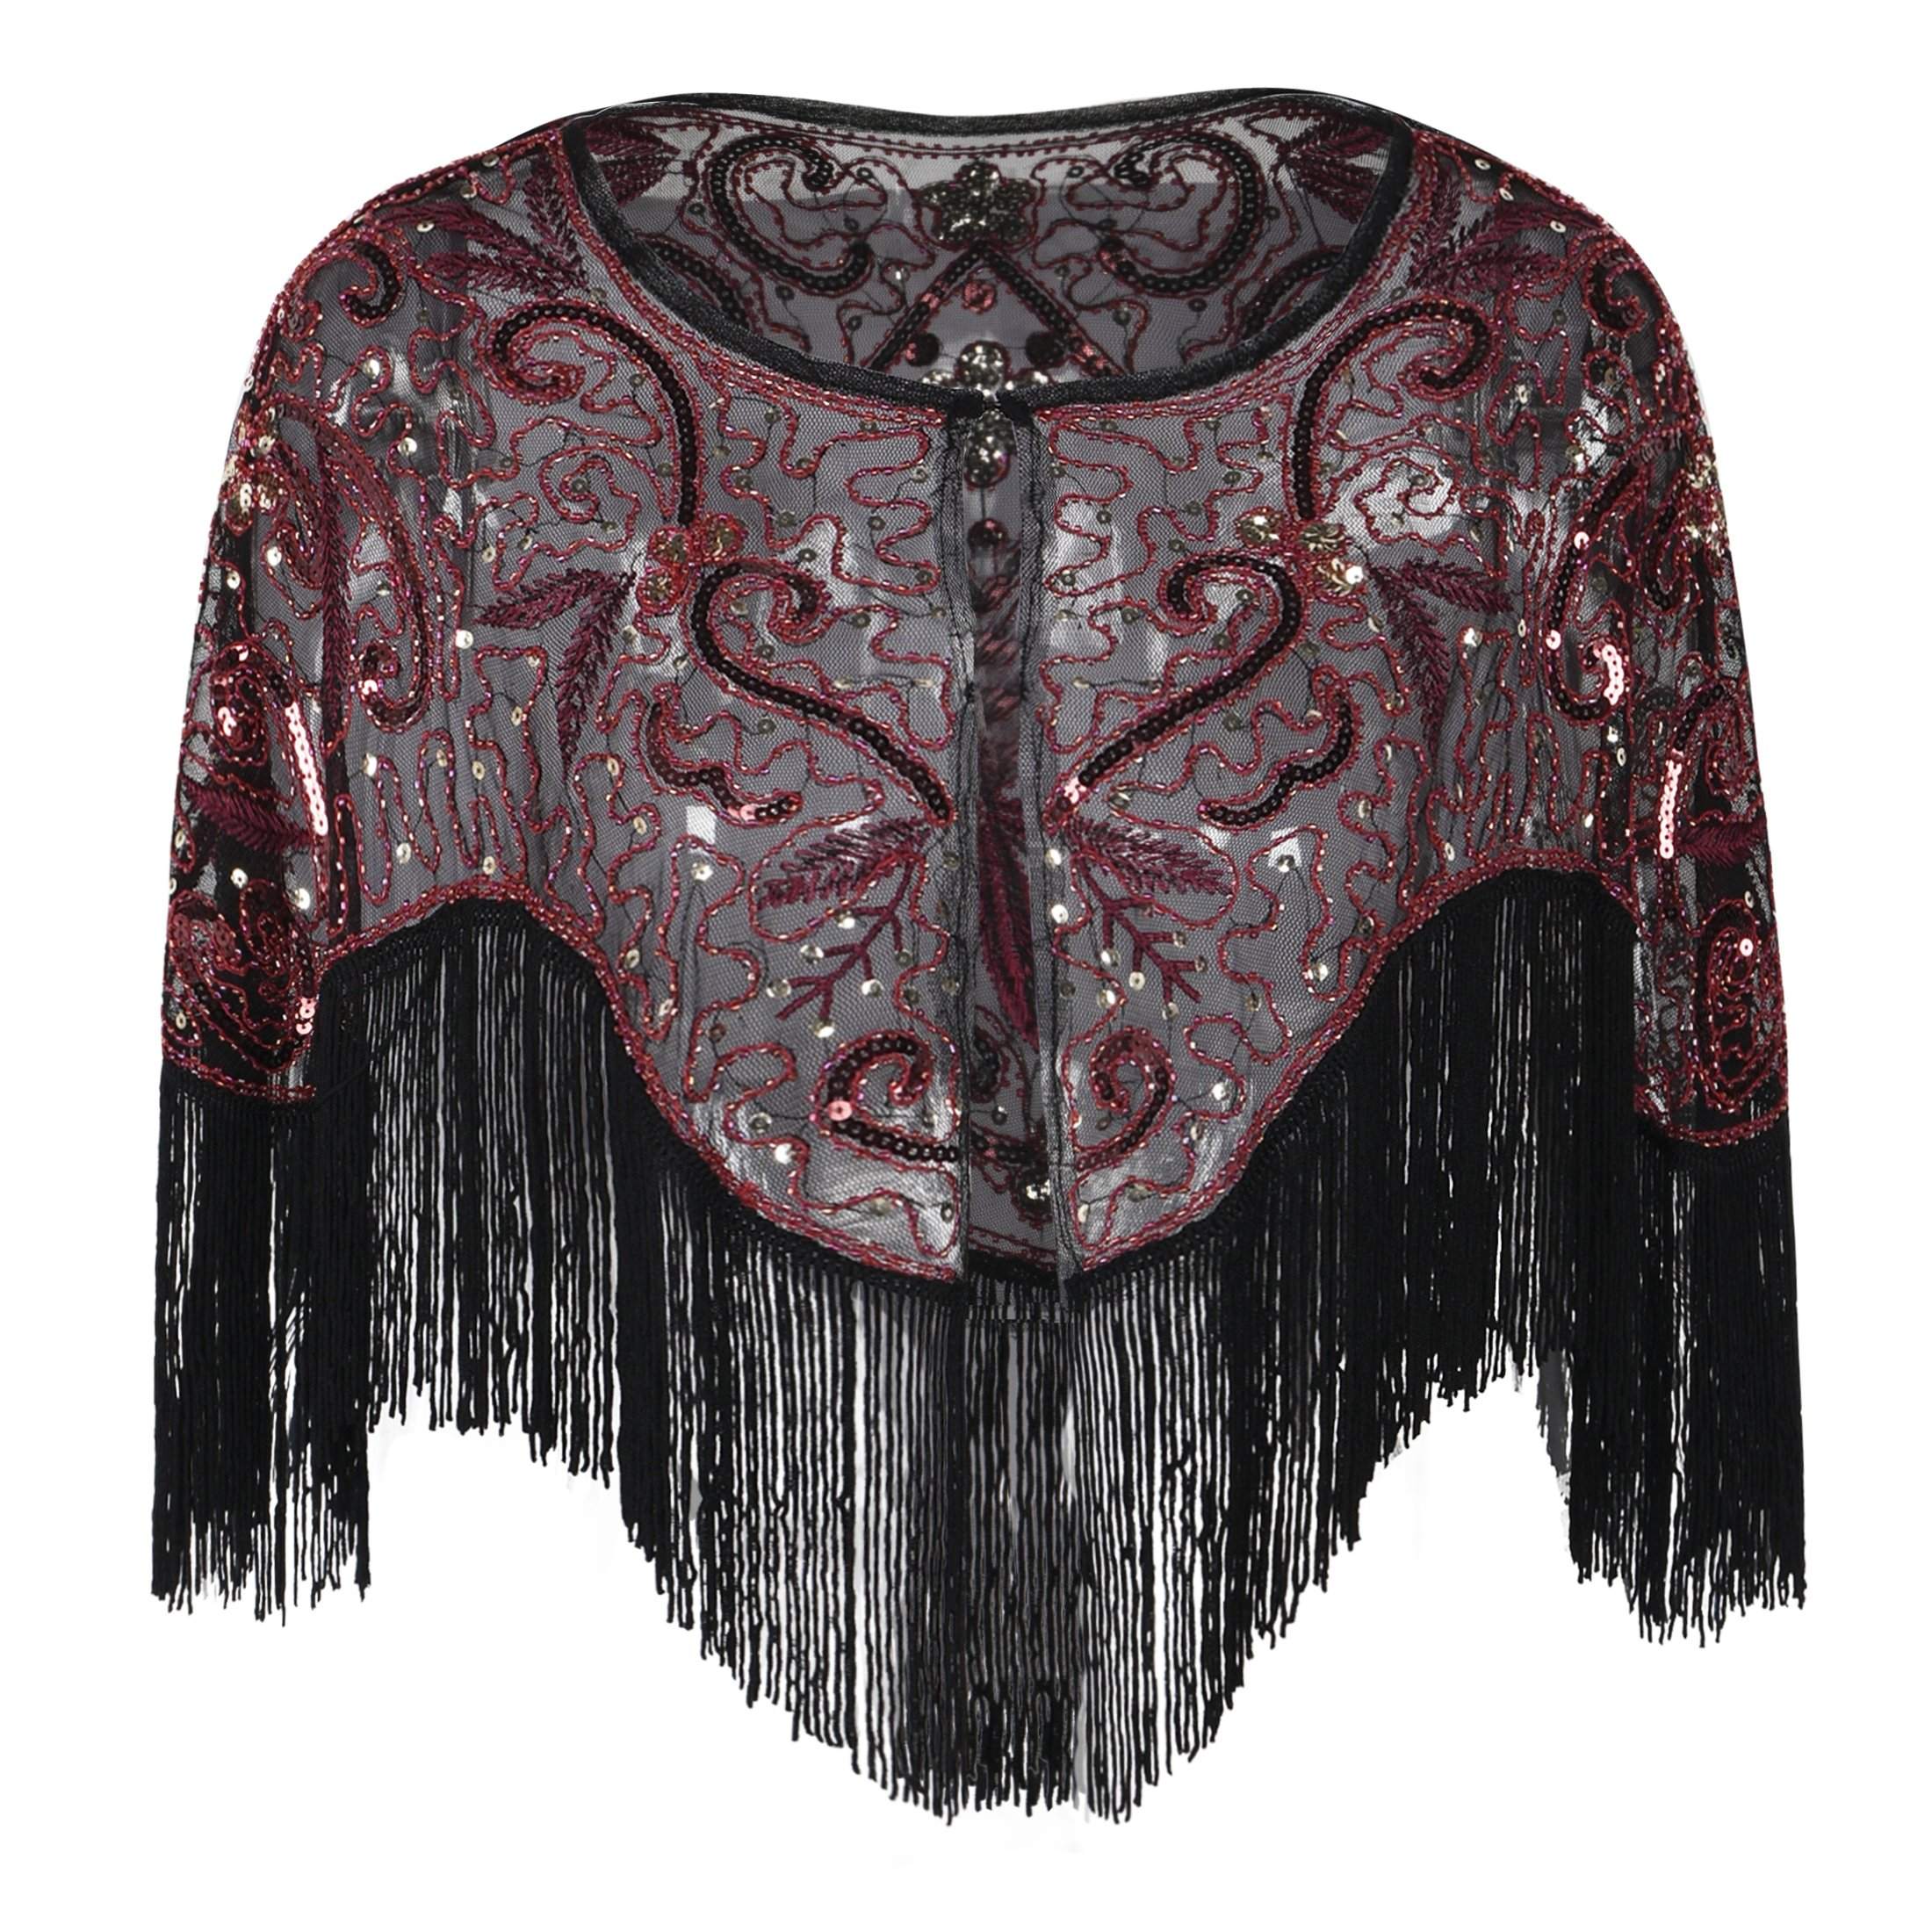 PrettyGuide Women's Evening Warps Bead Sequin Fringed Flapper 1920s Bridal Capelet Burgundy